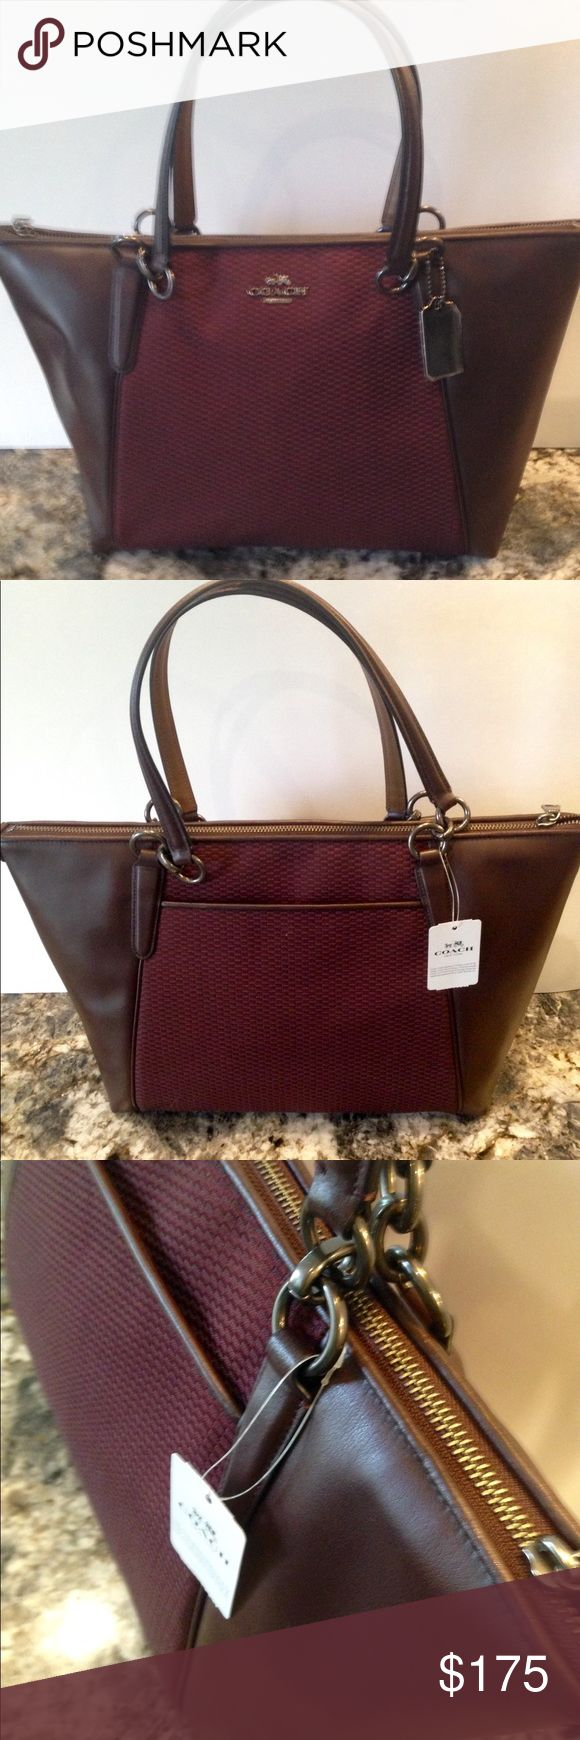 """NWT Coach Legacy Jacquard Ava Tote/Oxblood New with tags Coach legacy jacquard material and leather/oxblood Ava zip tote shoulder handbag. Zip top closure with antique nickel hardware. Handles with 9""""drop. Outside slip pocket on back. F57246. No Trades Coach Bags Shoulder Bags"""